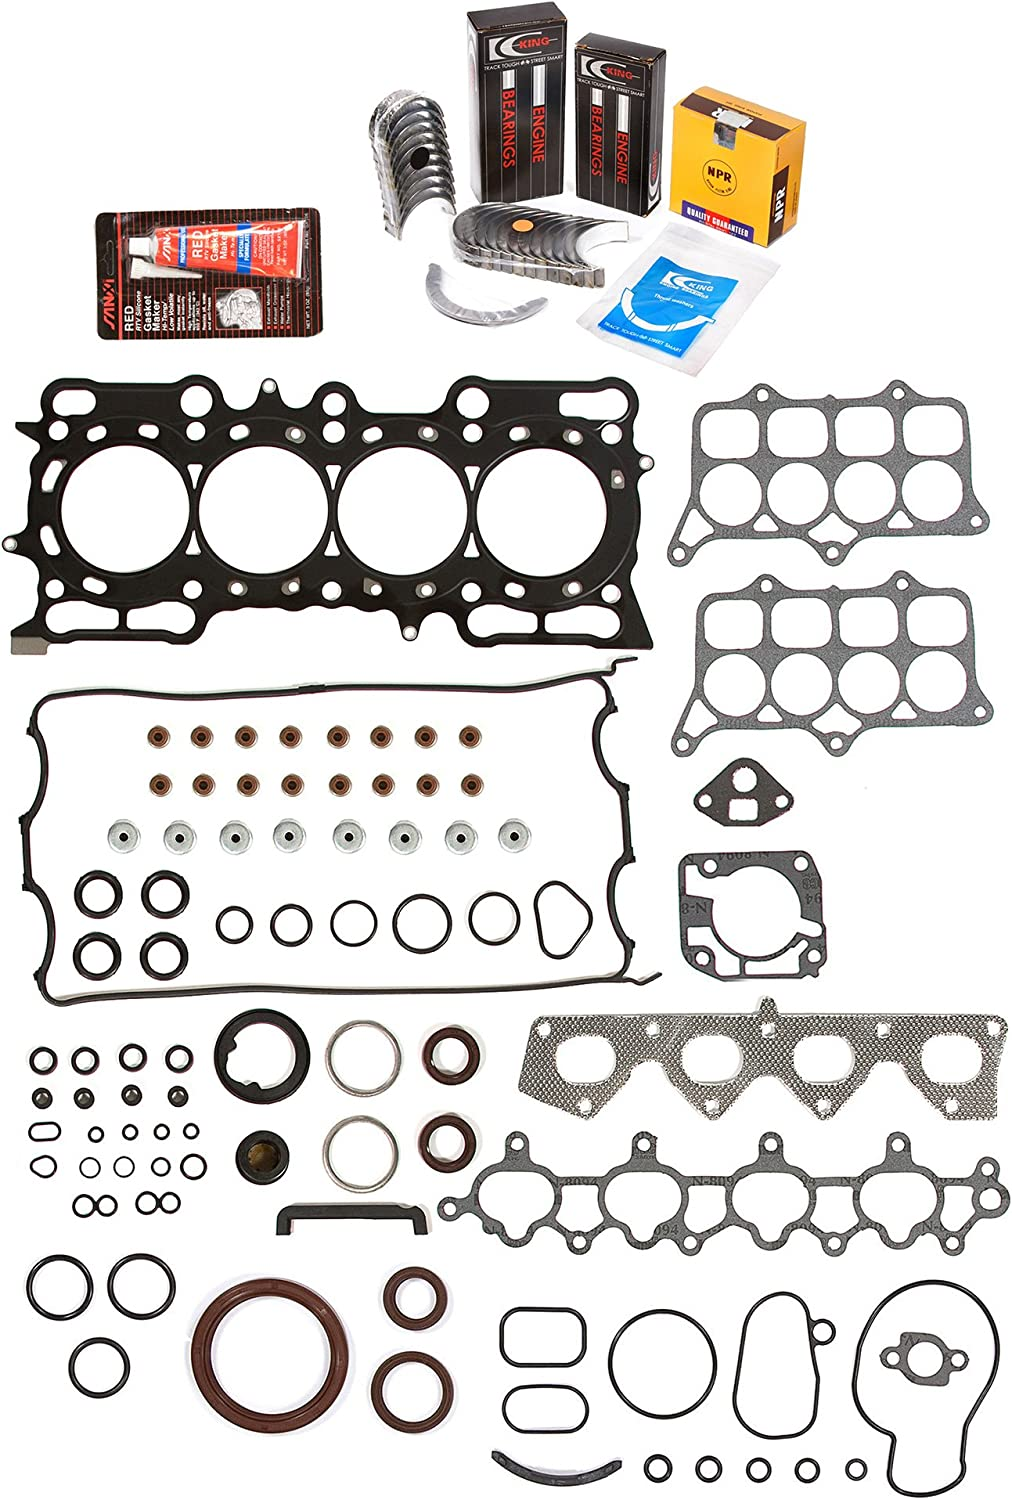 Fit 93-96 Honda Prelude VTEC DOHC Pistons Main Rod Bearings and Rings Set H22A1